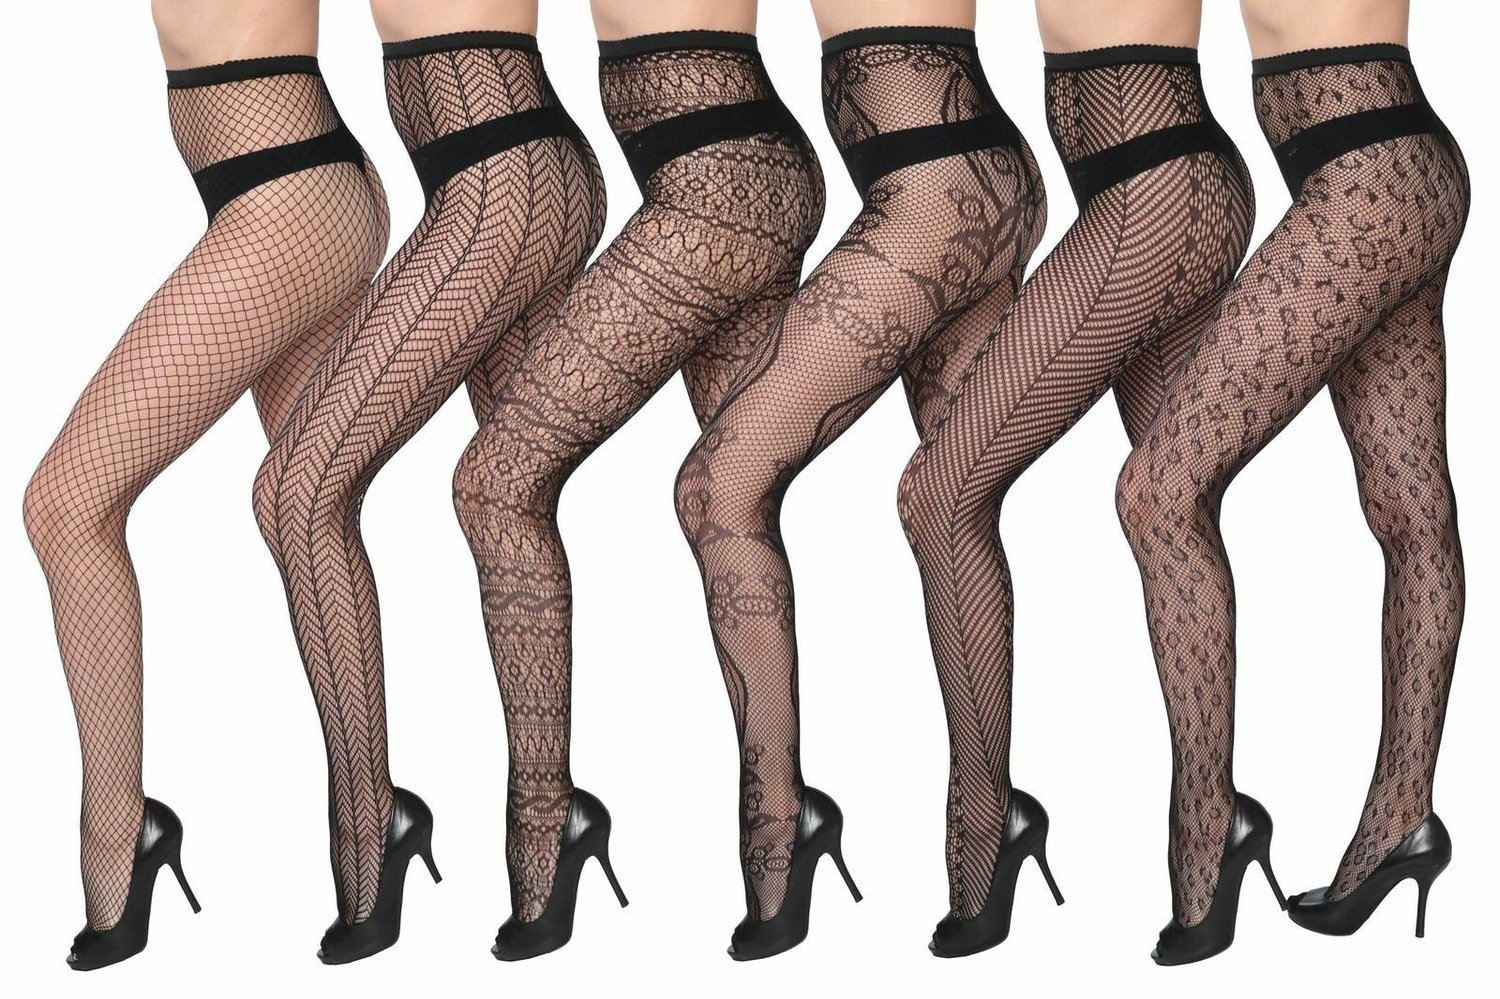 Isadora Paccini Women's 6-Pack Fishnet Lace Pantyhose Tights, Queen, Black 810Q